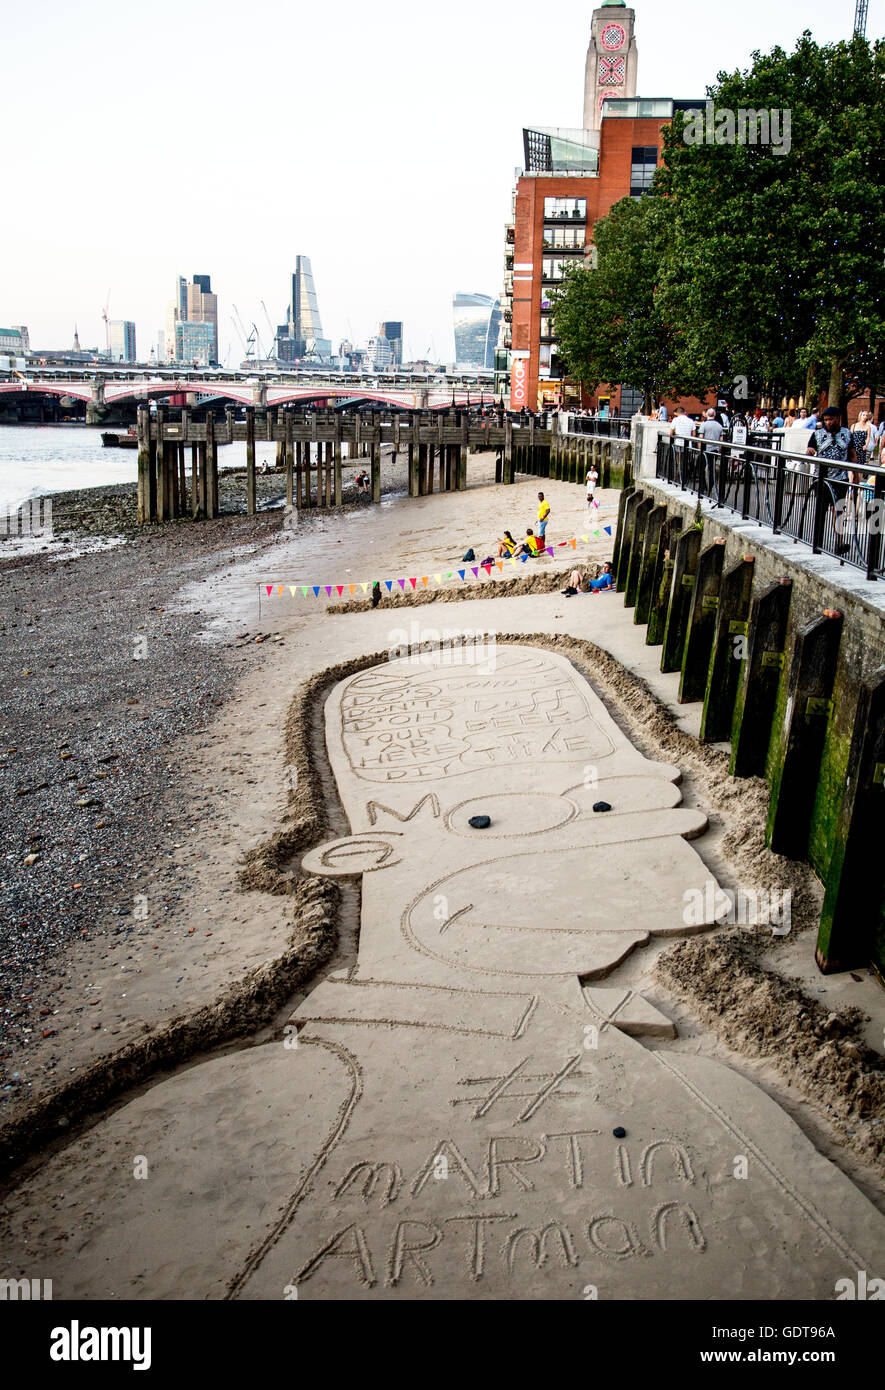 Bart Simpson Sand Art South Bank London UK - Stock Image